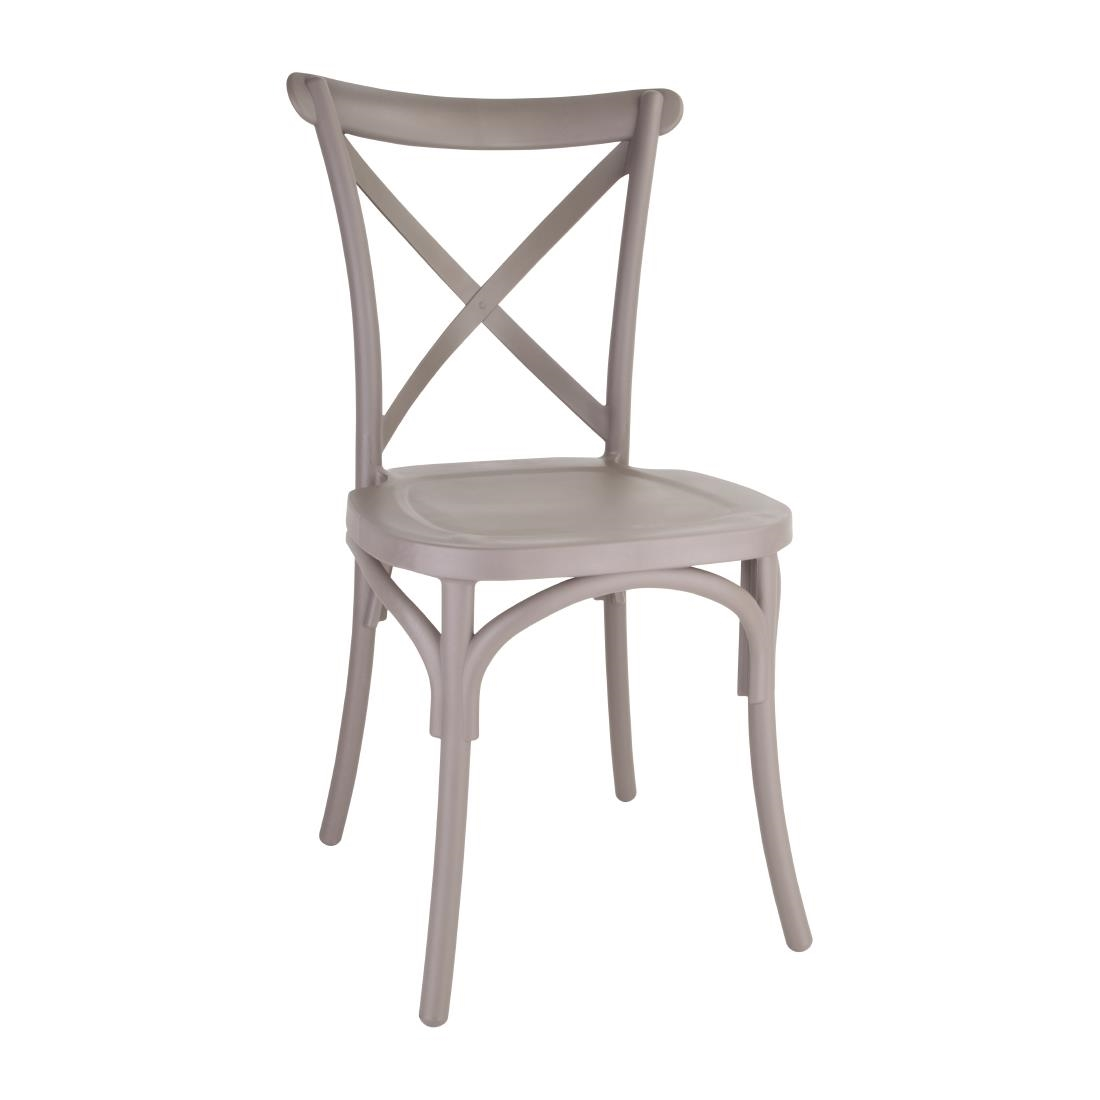 Image of Bolero Polypropylene Cross Back Side Chair Cappuccino (Pack of 4) Pack of 4